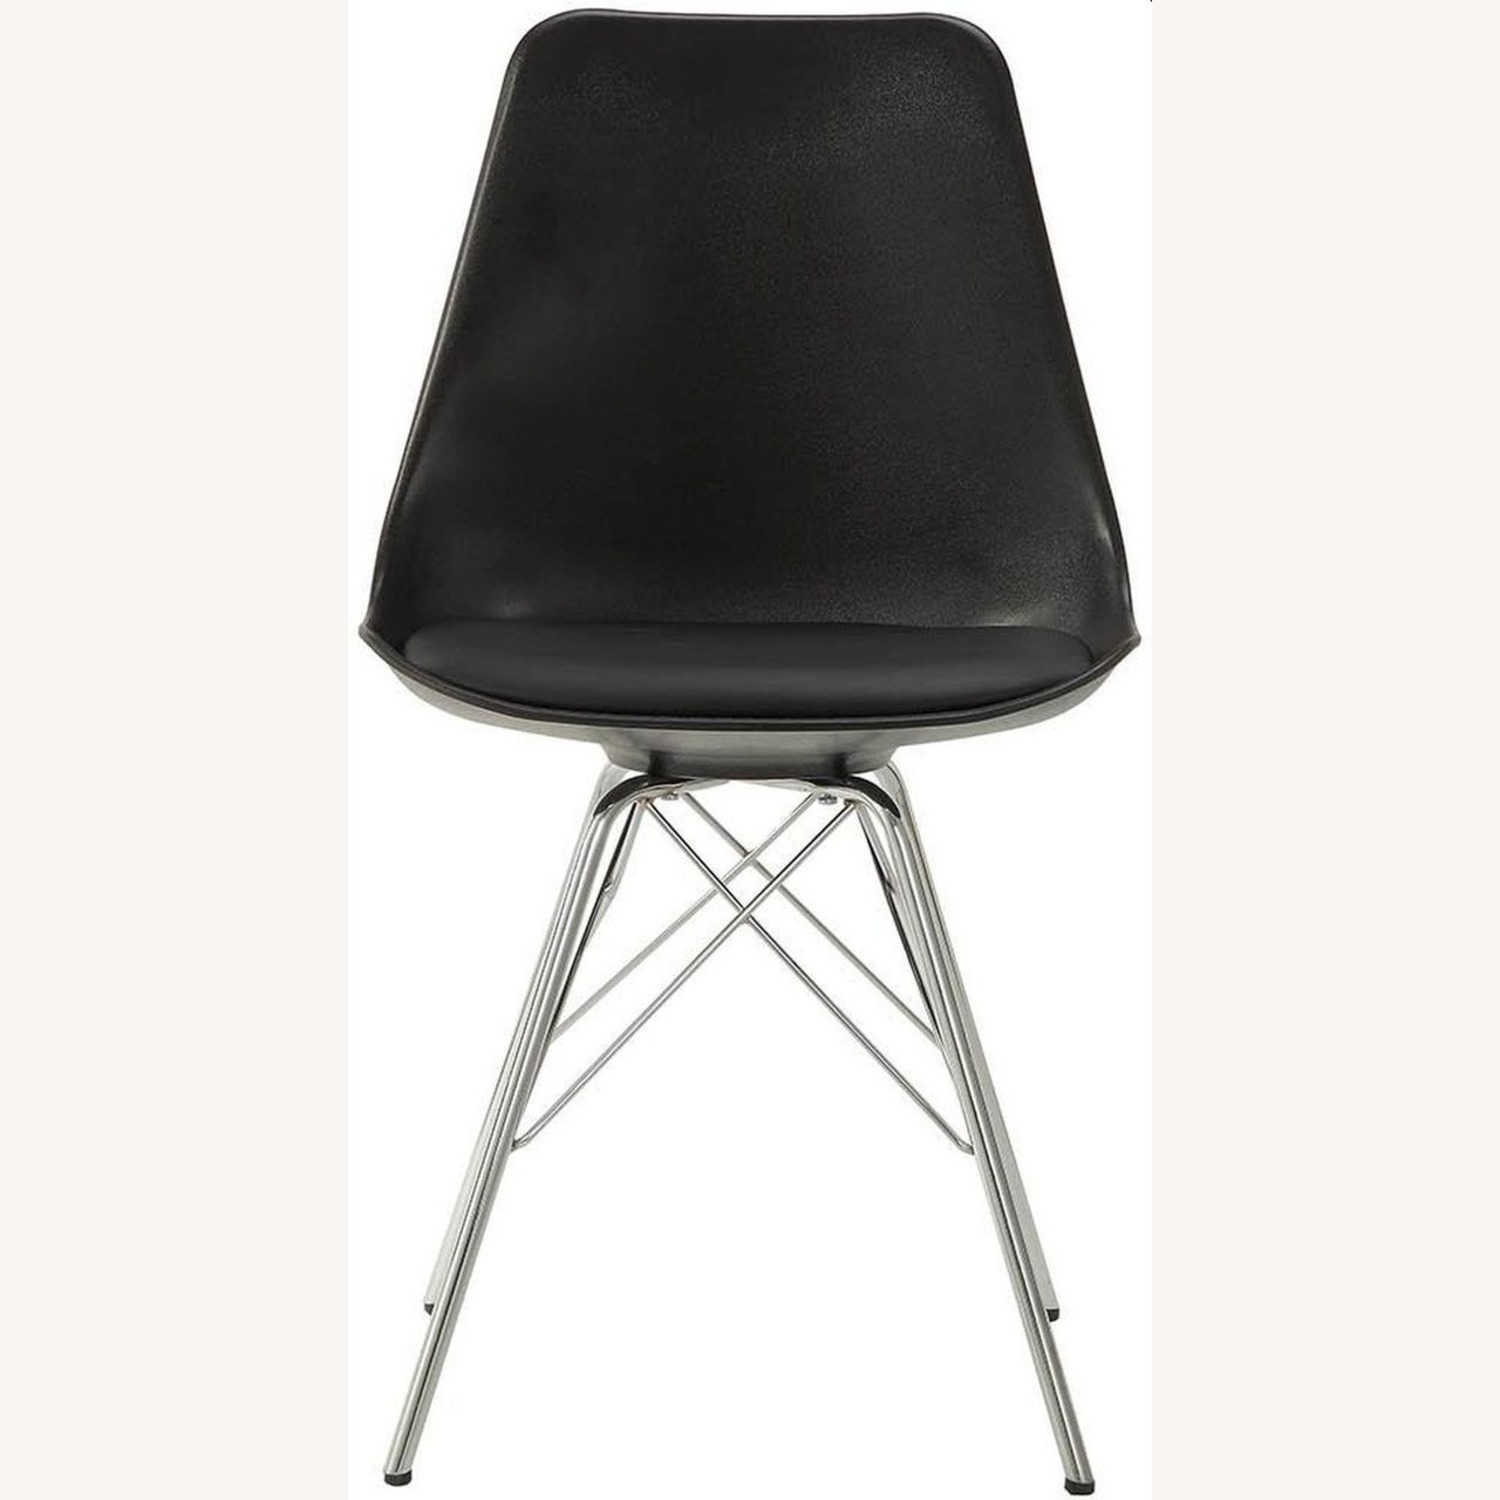 Modern Black Side Chair W Padded Cushion - image-1